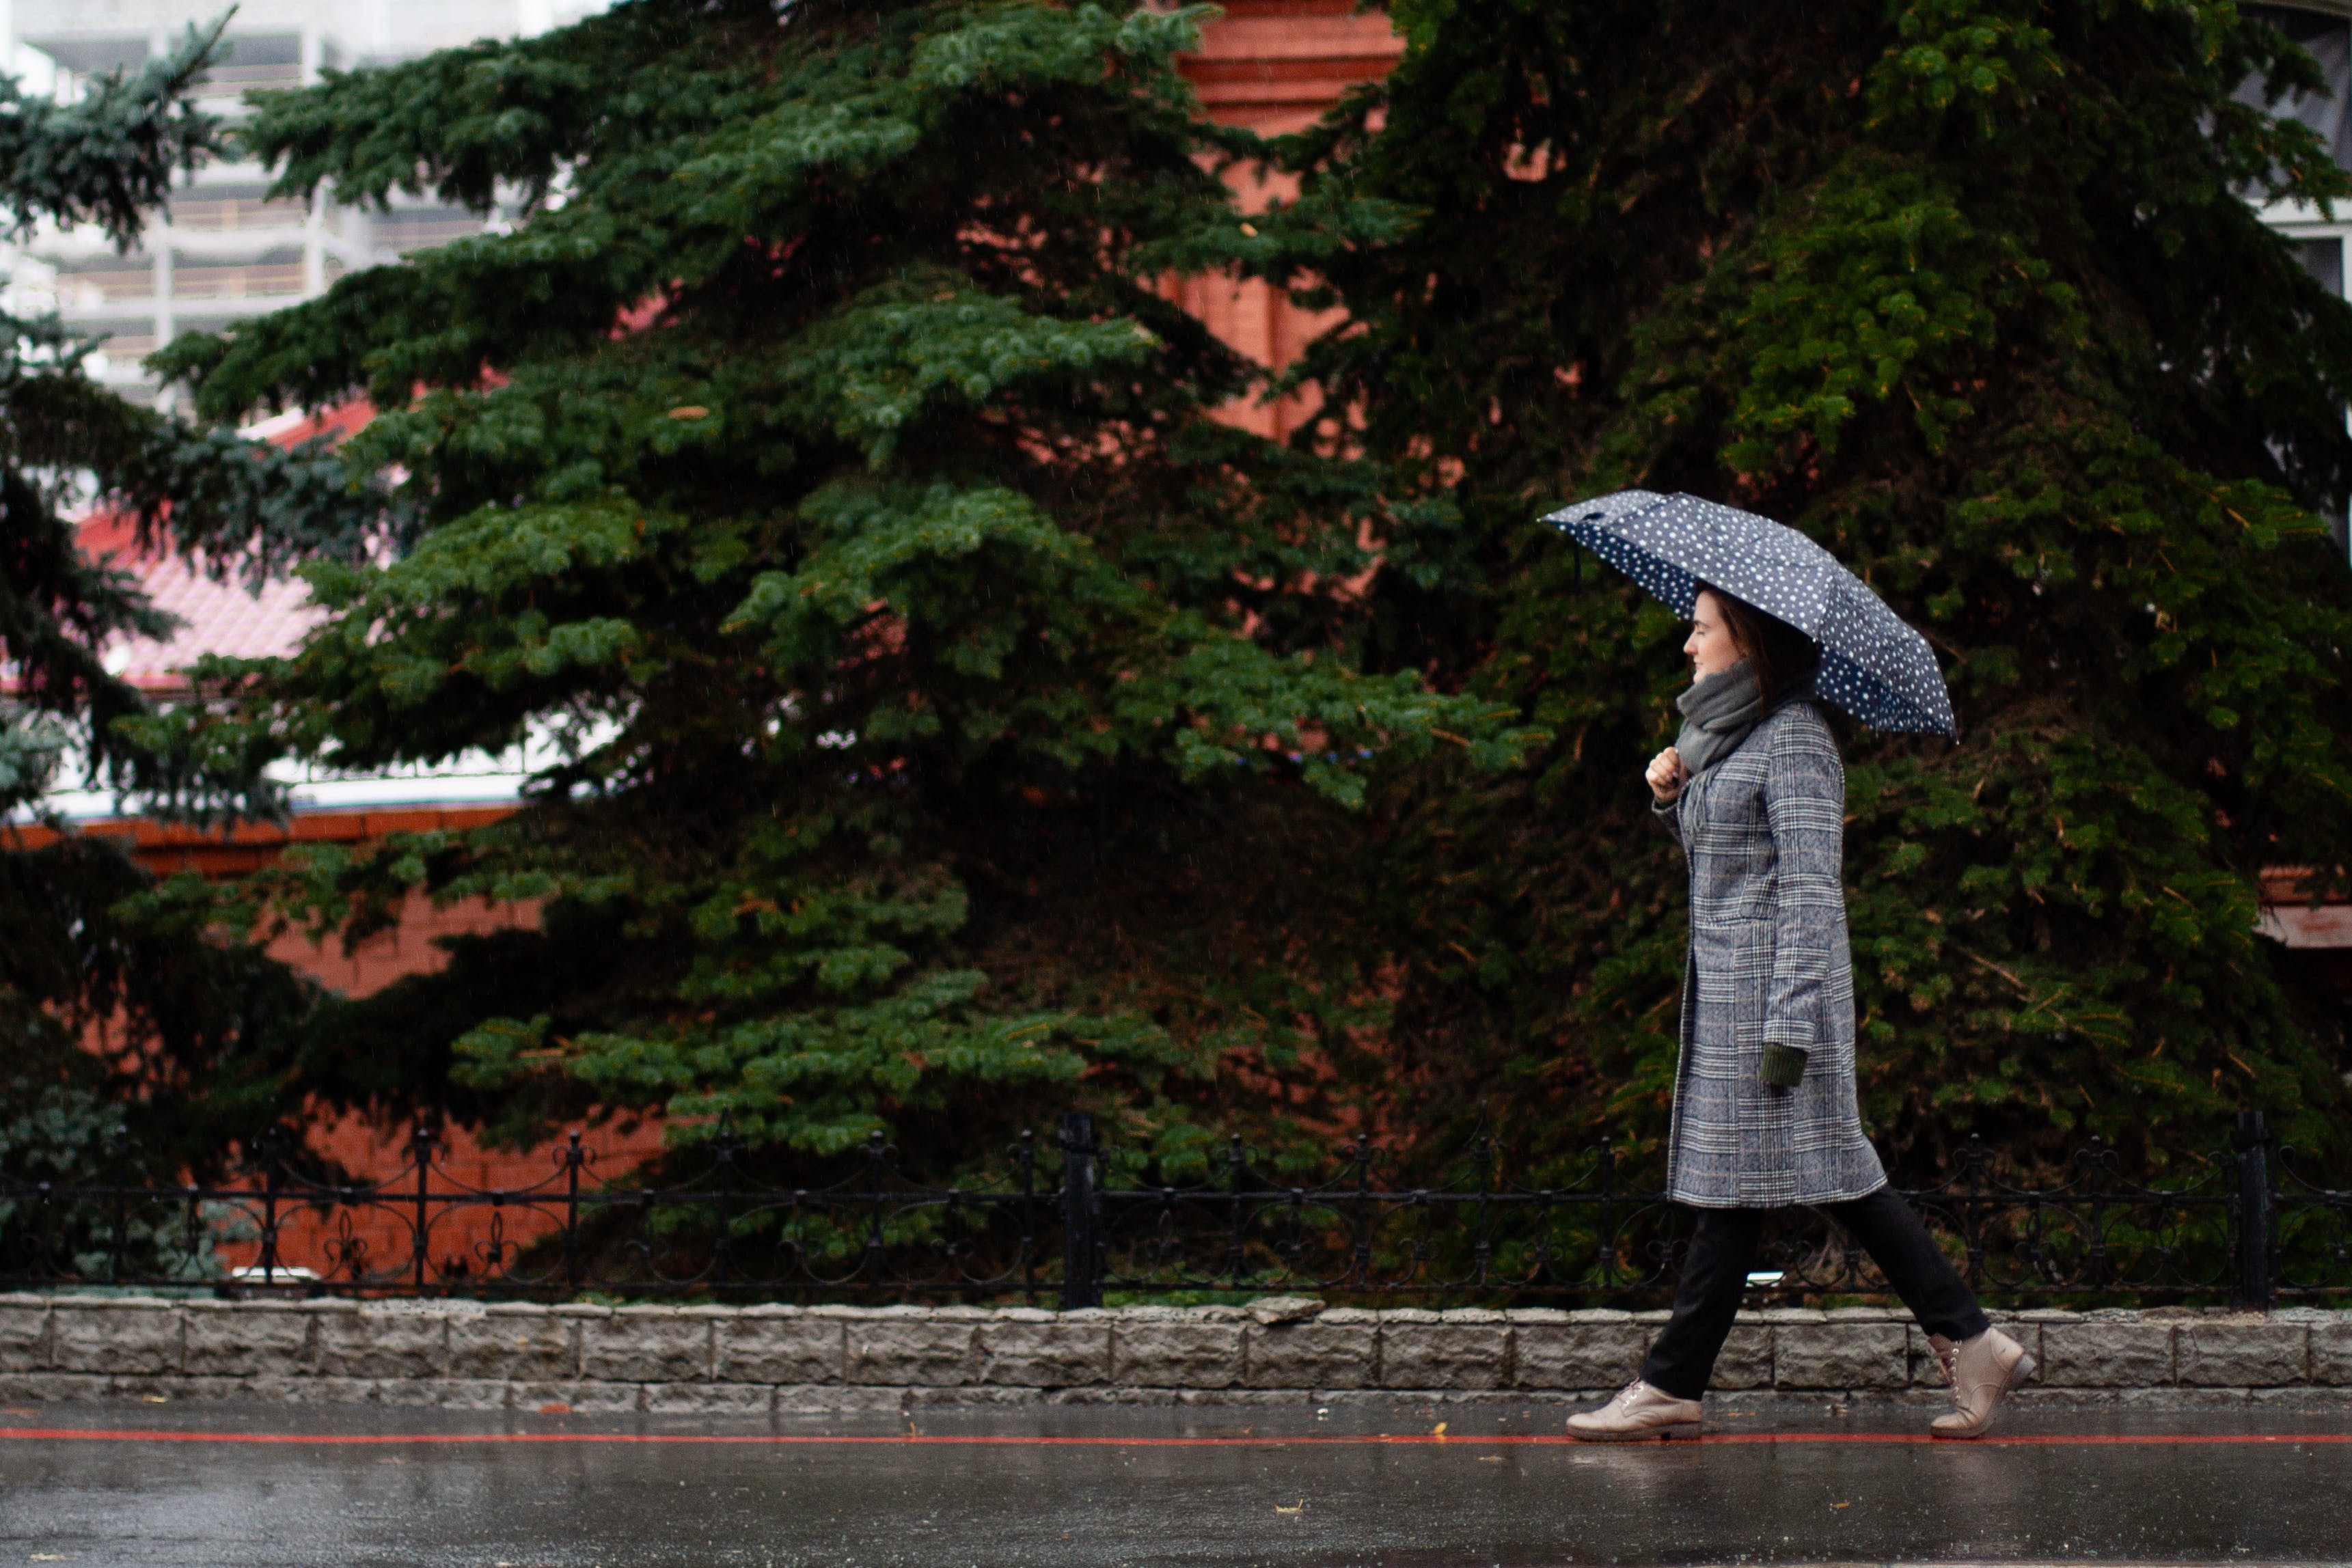 Woman Using Umbrella While Walking